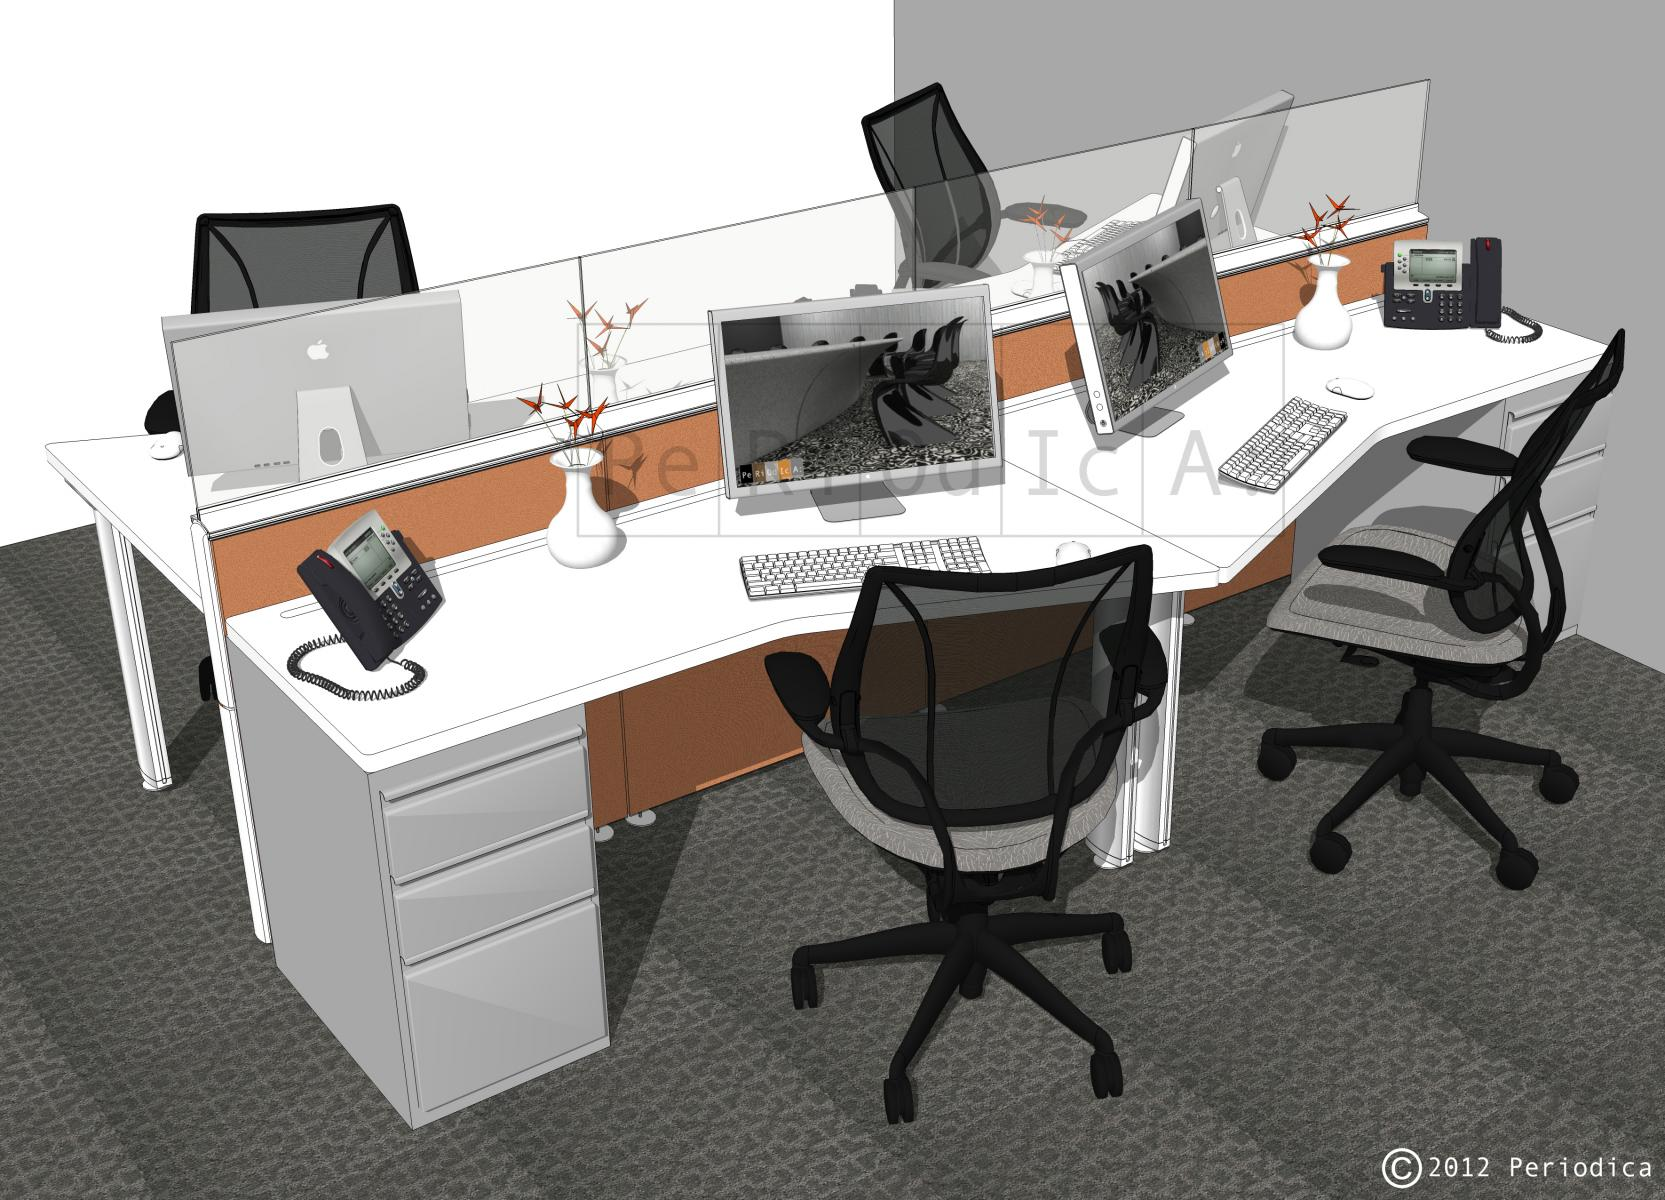 003/ cluster of 4 workstations (Inscape)